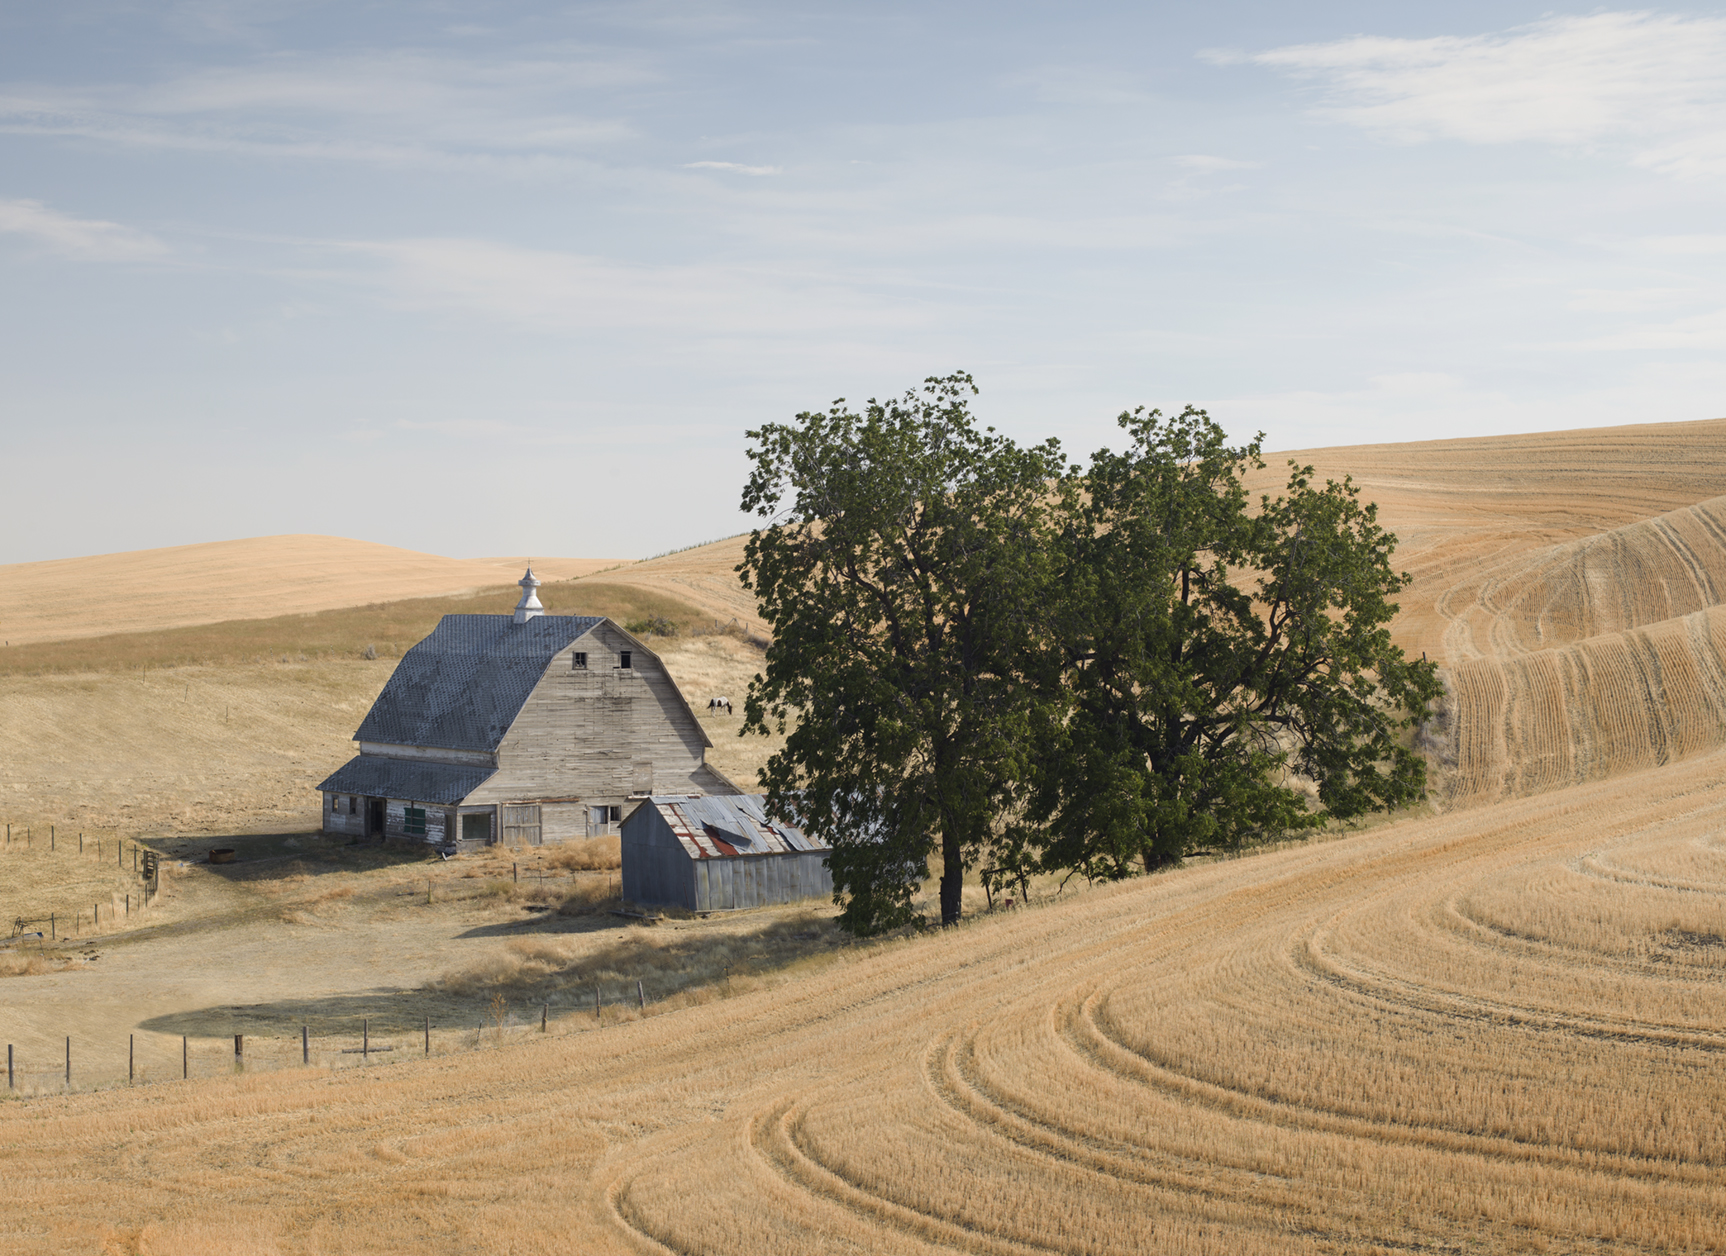 Barn and Horse, Palouse, USA (010040)